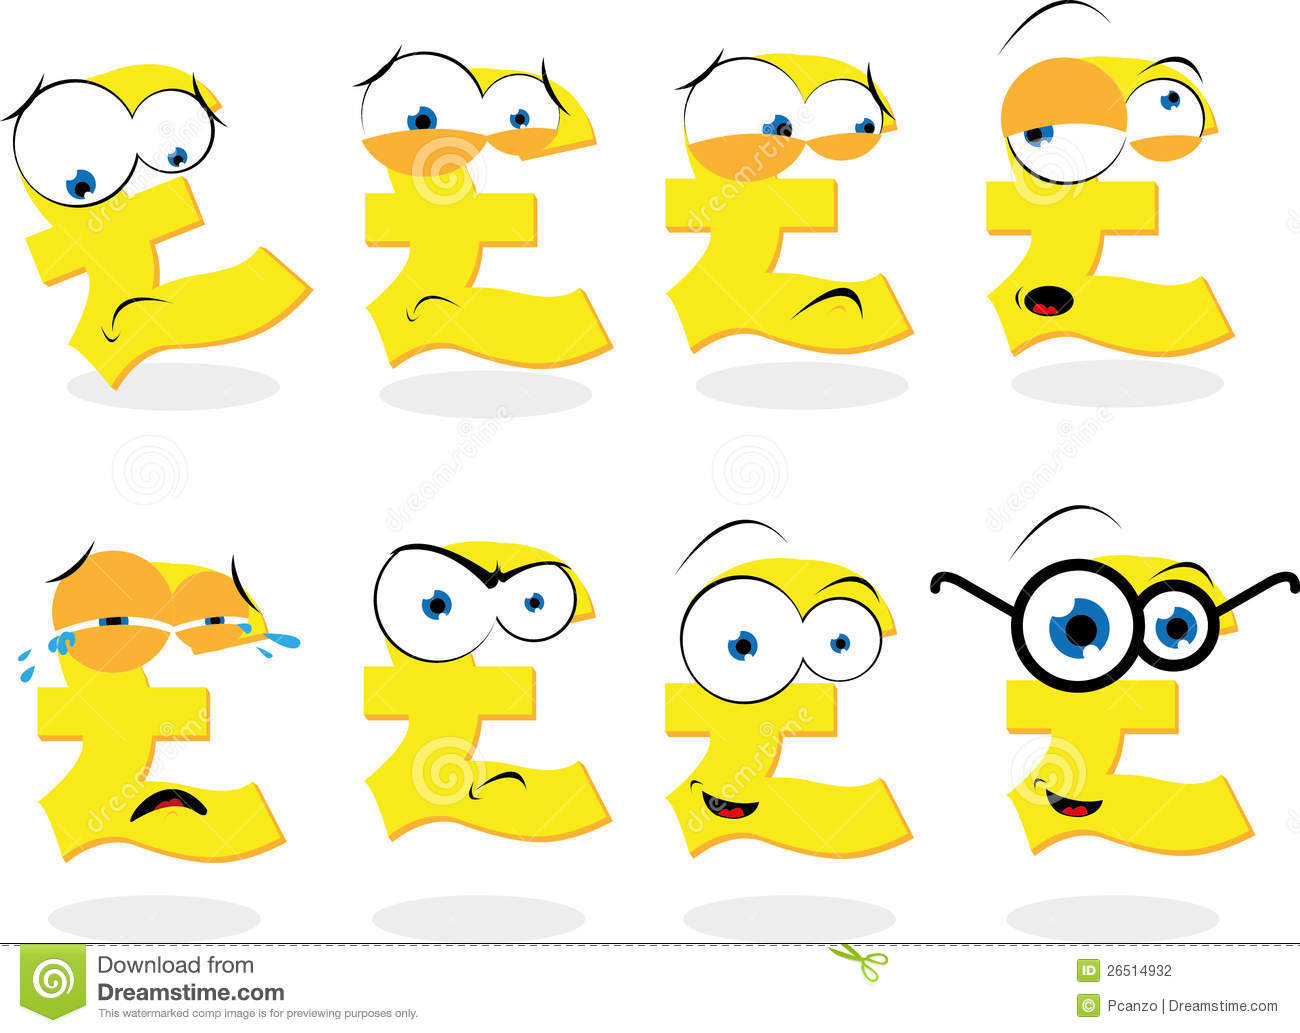 Funny pound symbol stock illustrations 128 funny pound symbol funny pound symbol stock illustrations 128 funny pound symbol stock illustrations vectors clipart dreamstime buycottarizona Images